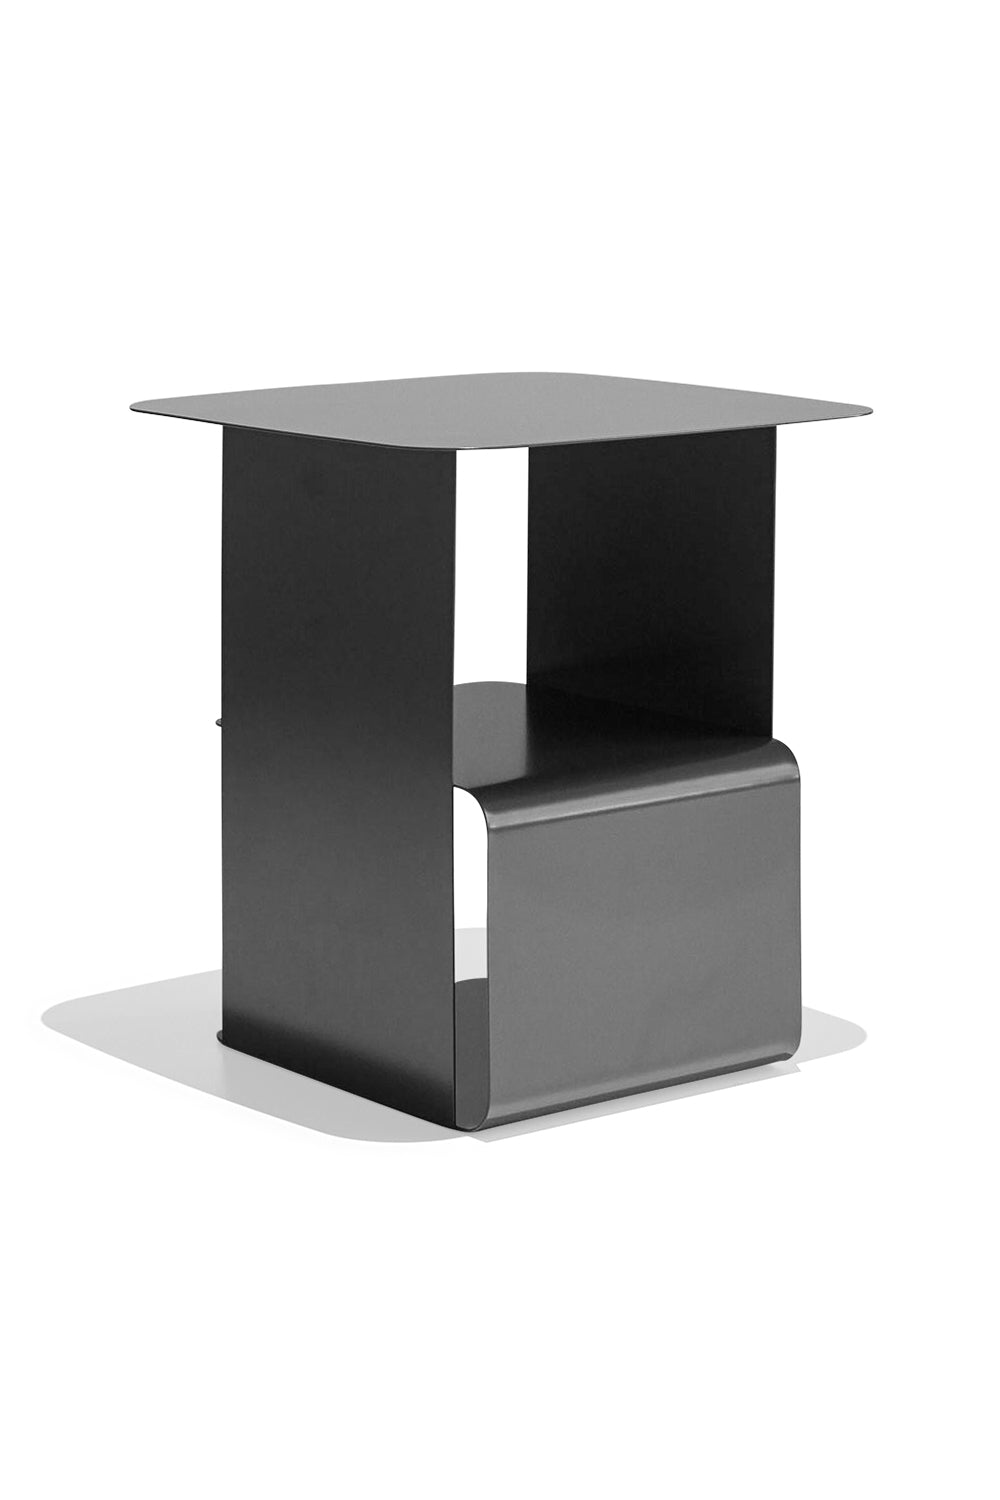 DEXTER side table